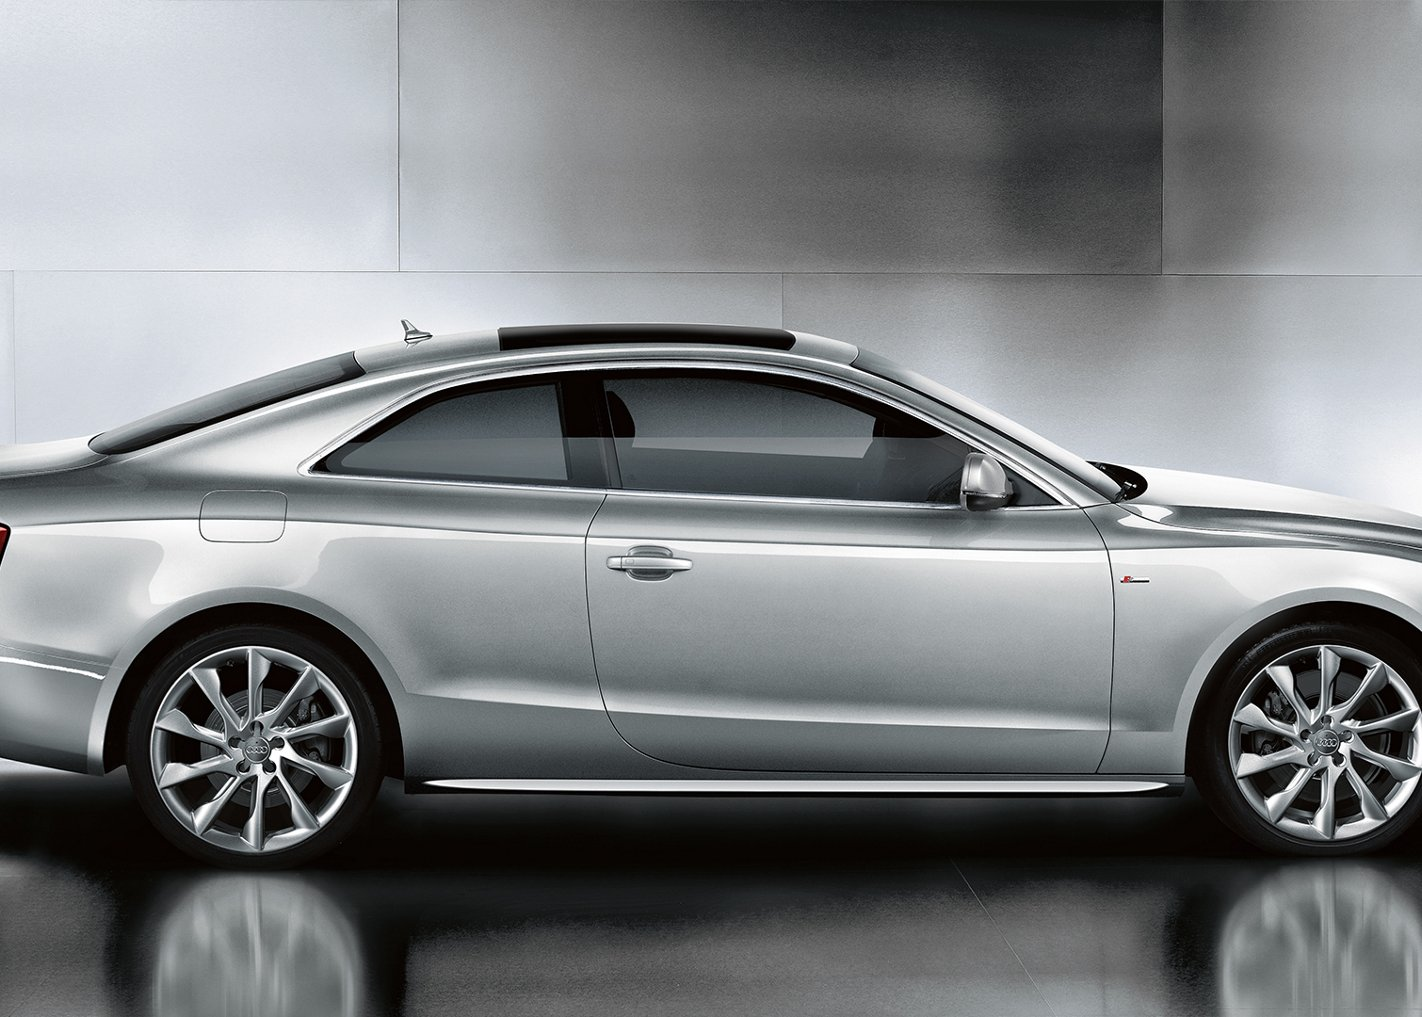 Audi A Price Lease Long Beach CA - Audi leases